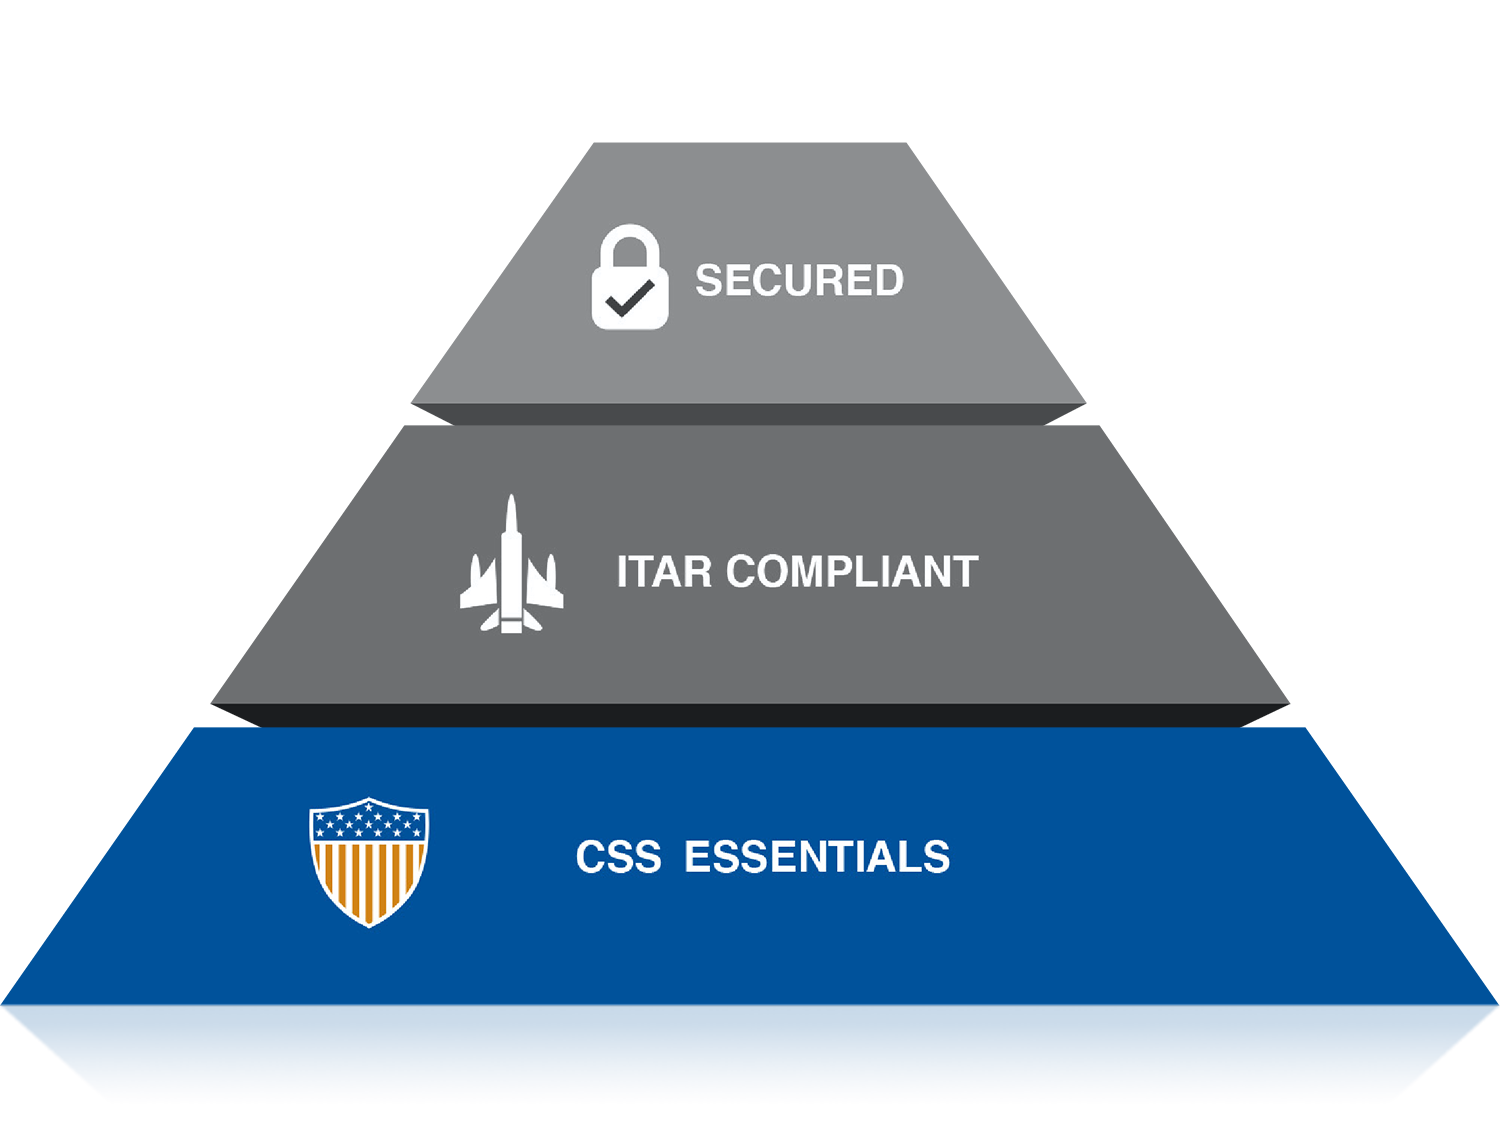 Third level of CSS Pyramid highlighted: CSS Essentials